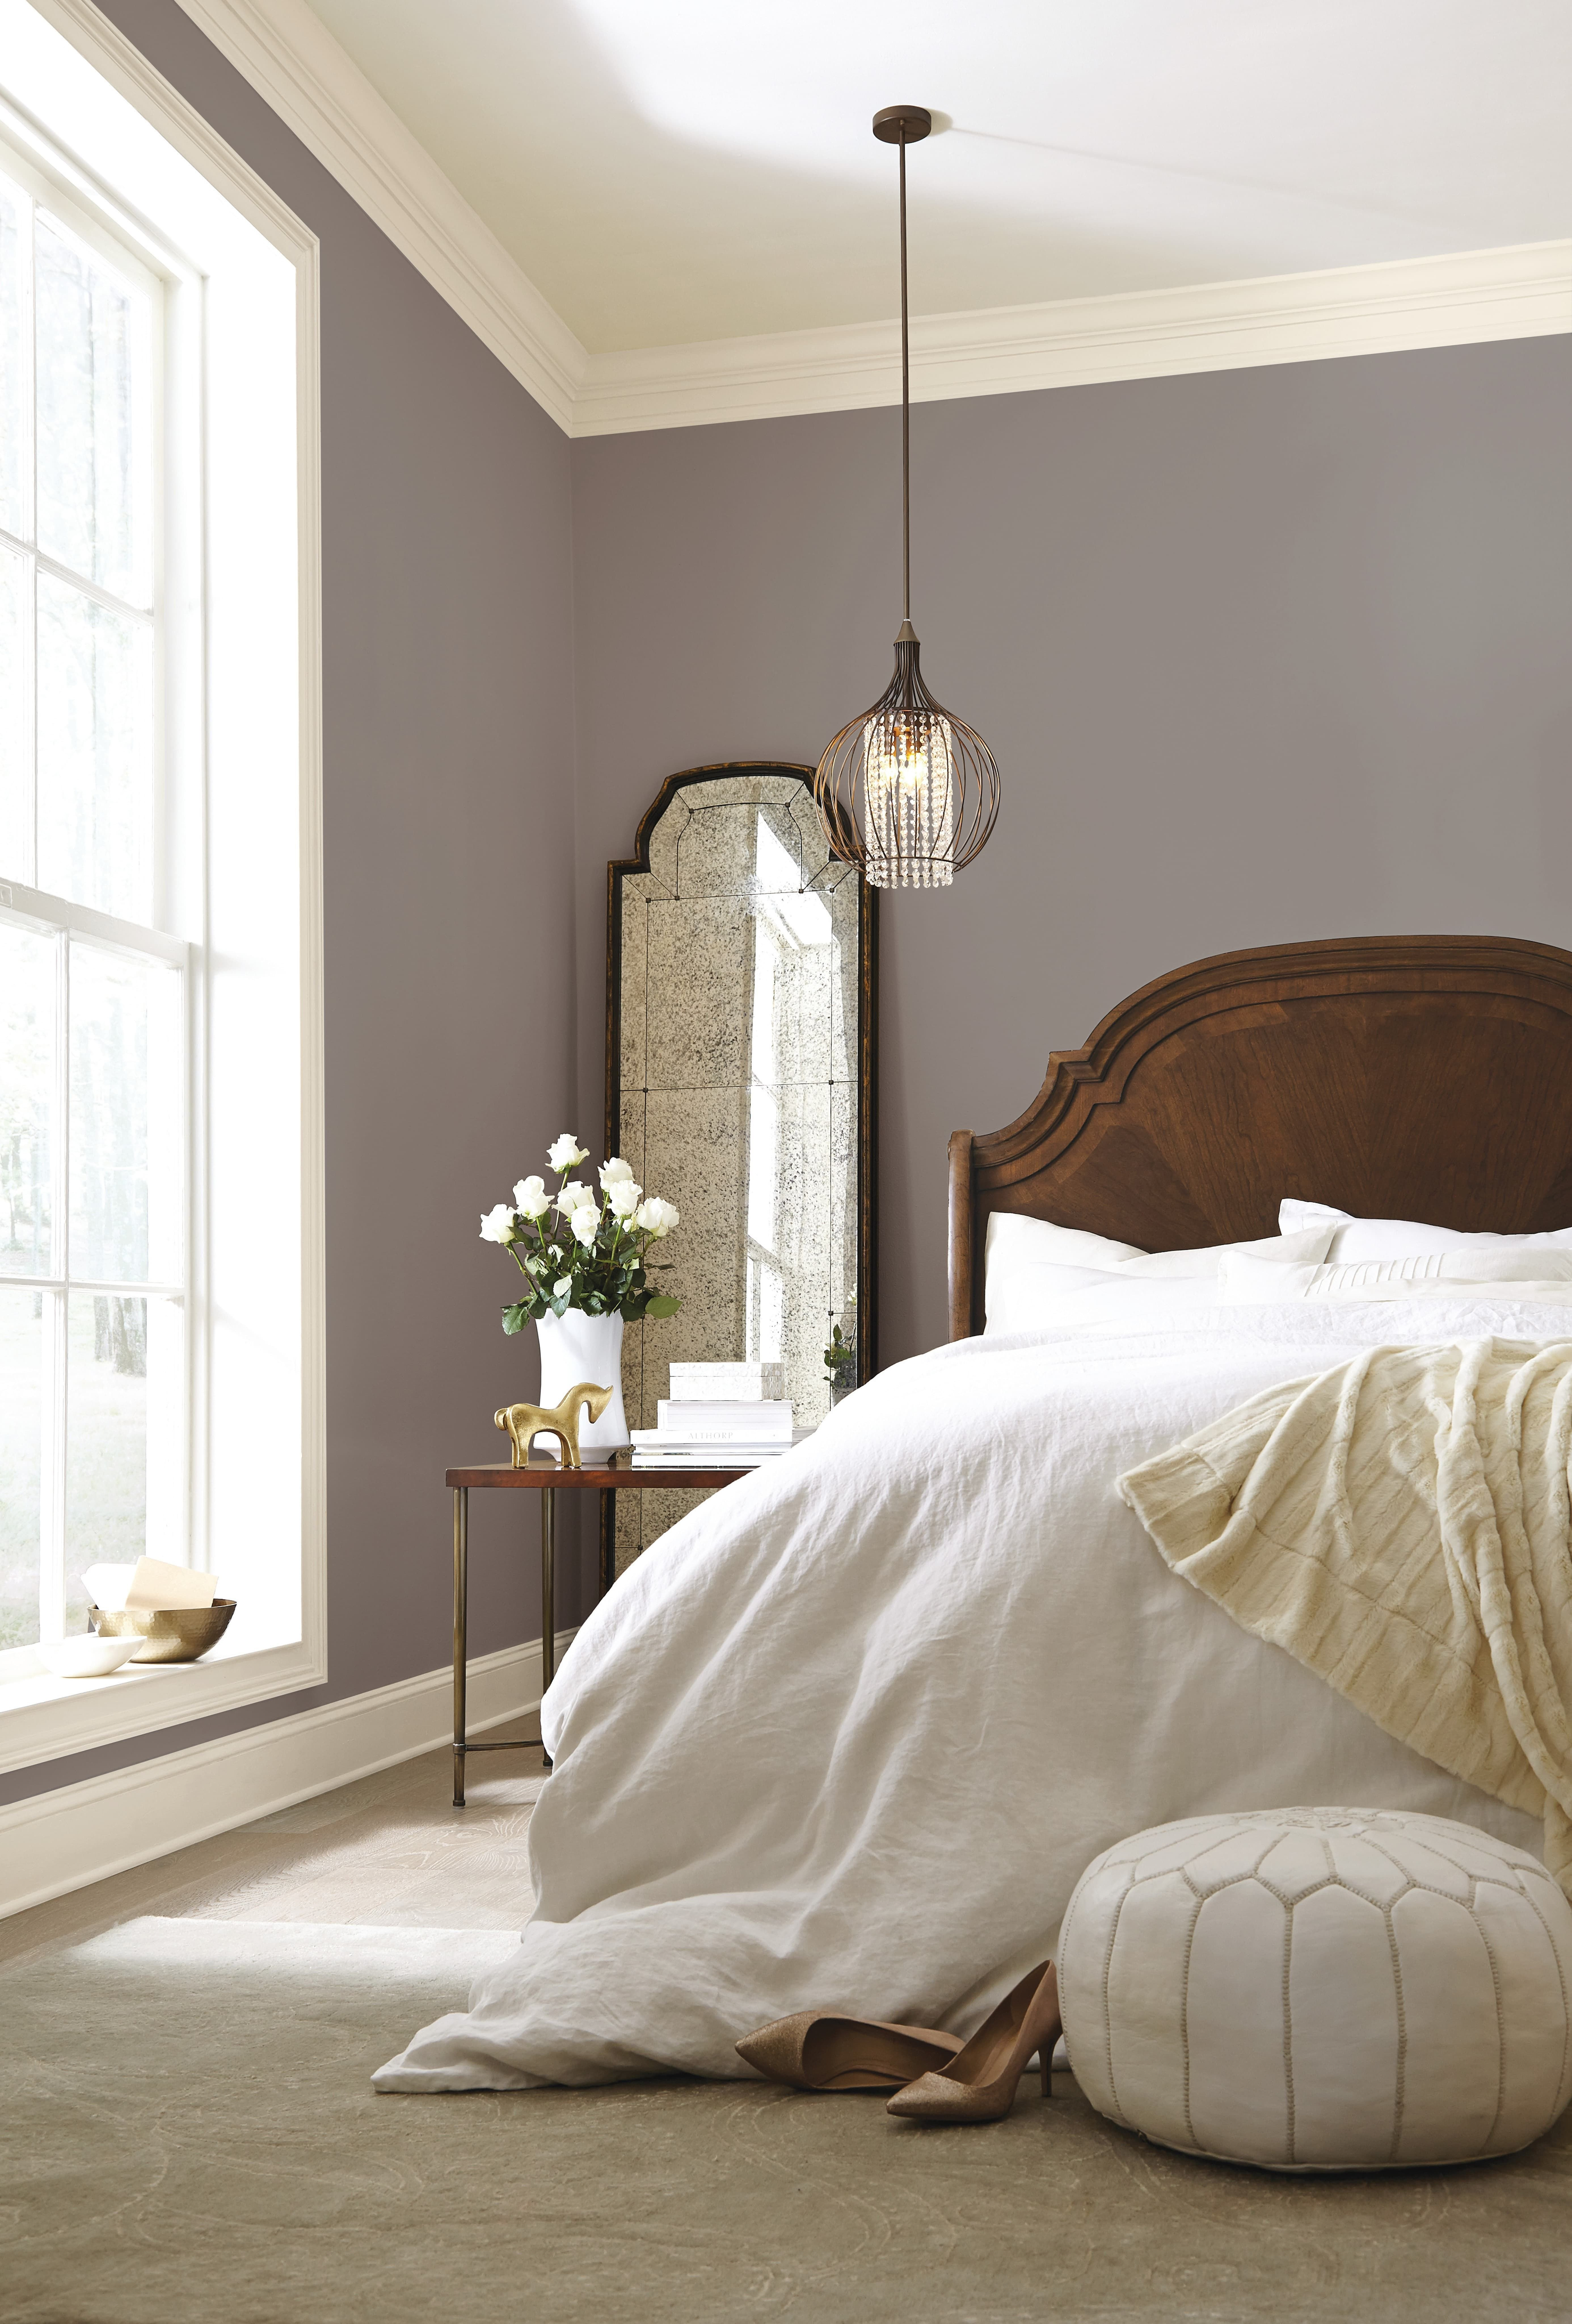 Bedroom Colors with Brown Furniture Beautiful the 2017 Colors Of the Year According to Paint Panies